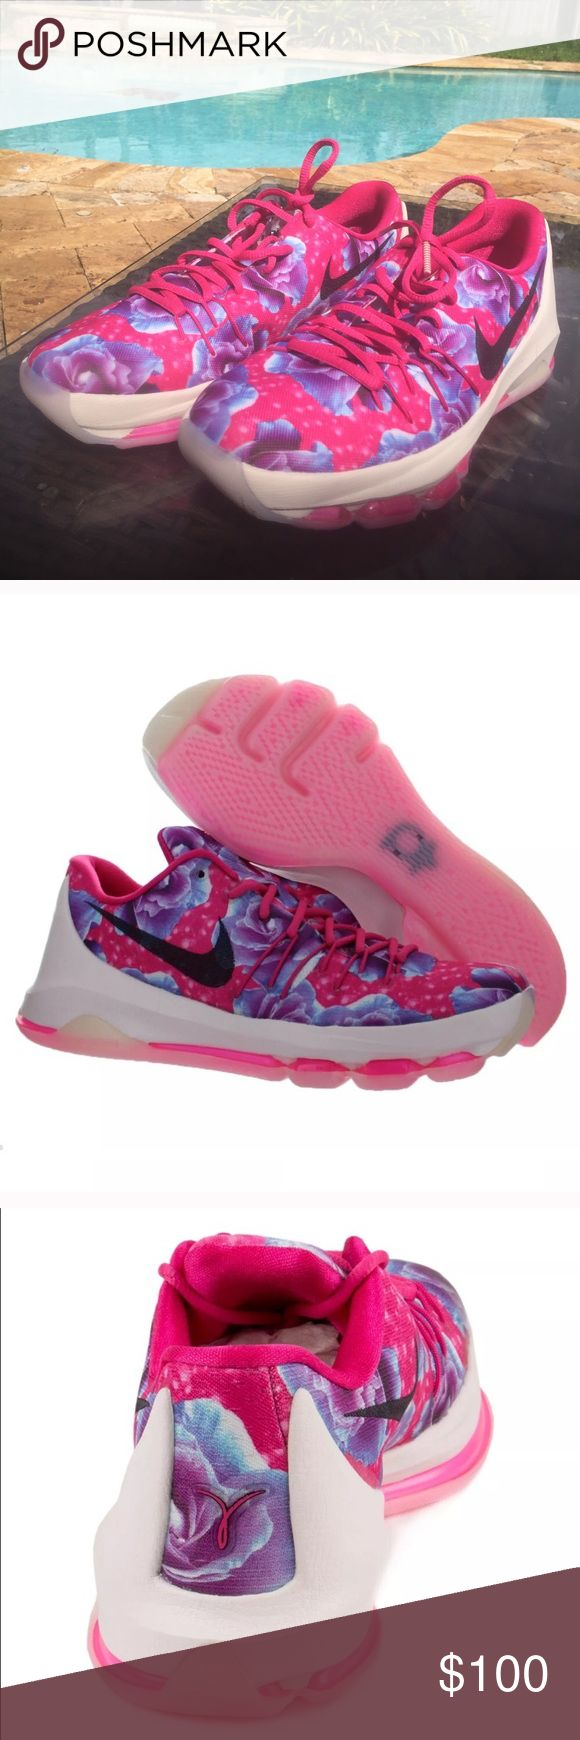 Kevin Durant Aunt Pearls Kay Yow Sneakers Aunt Pearl K 8 Breast Cancer Awareness Sneakers. Think Pink. These are brand new without a box. They are a size 7 youth which is equivalent to a Woman's size 9. NWOT Nike Shoes Sneakers